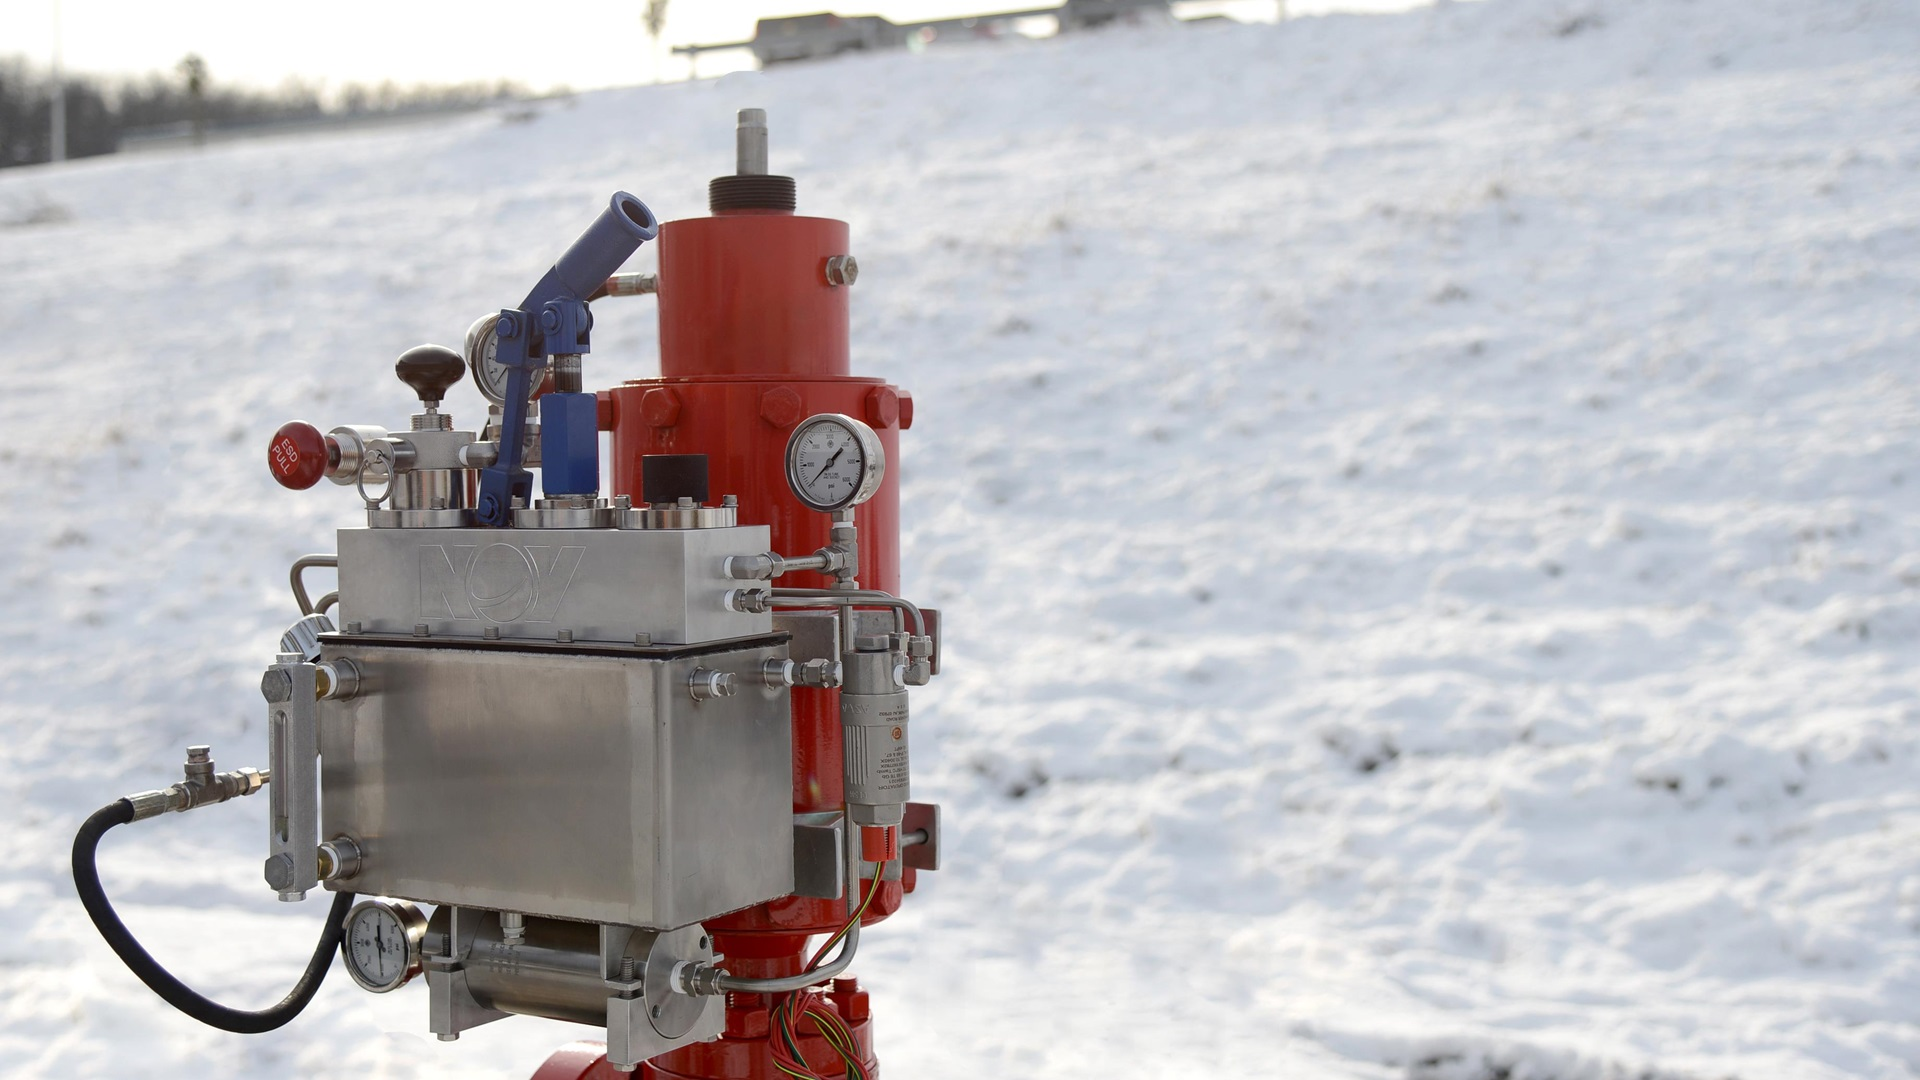 A Hydraulic Self-Contained Shut Down System in a harsh environment